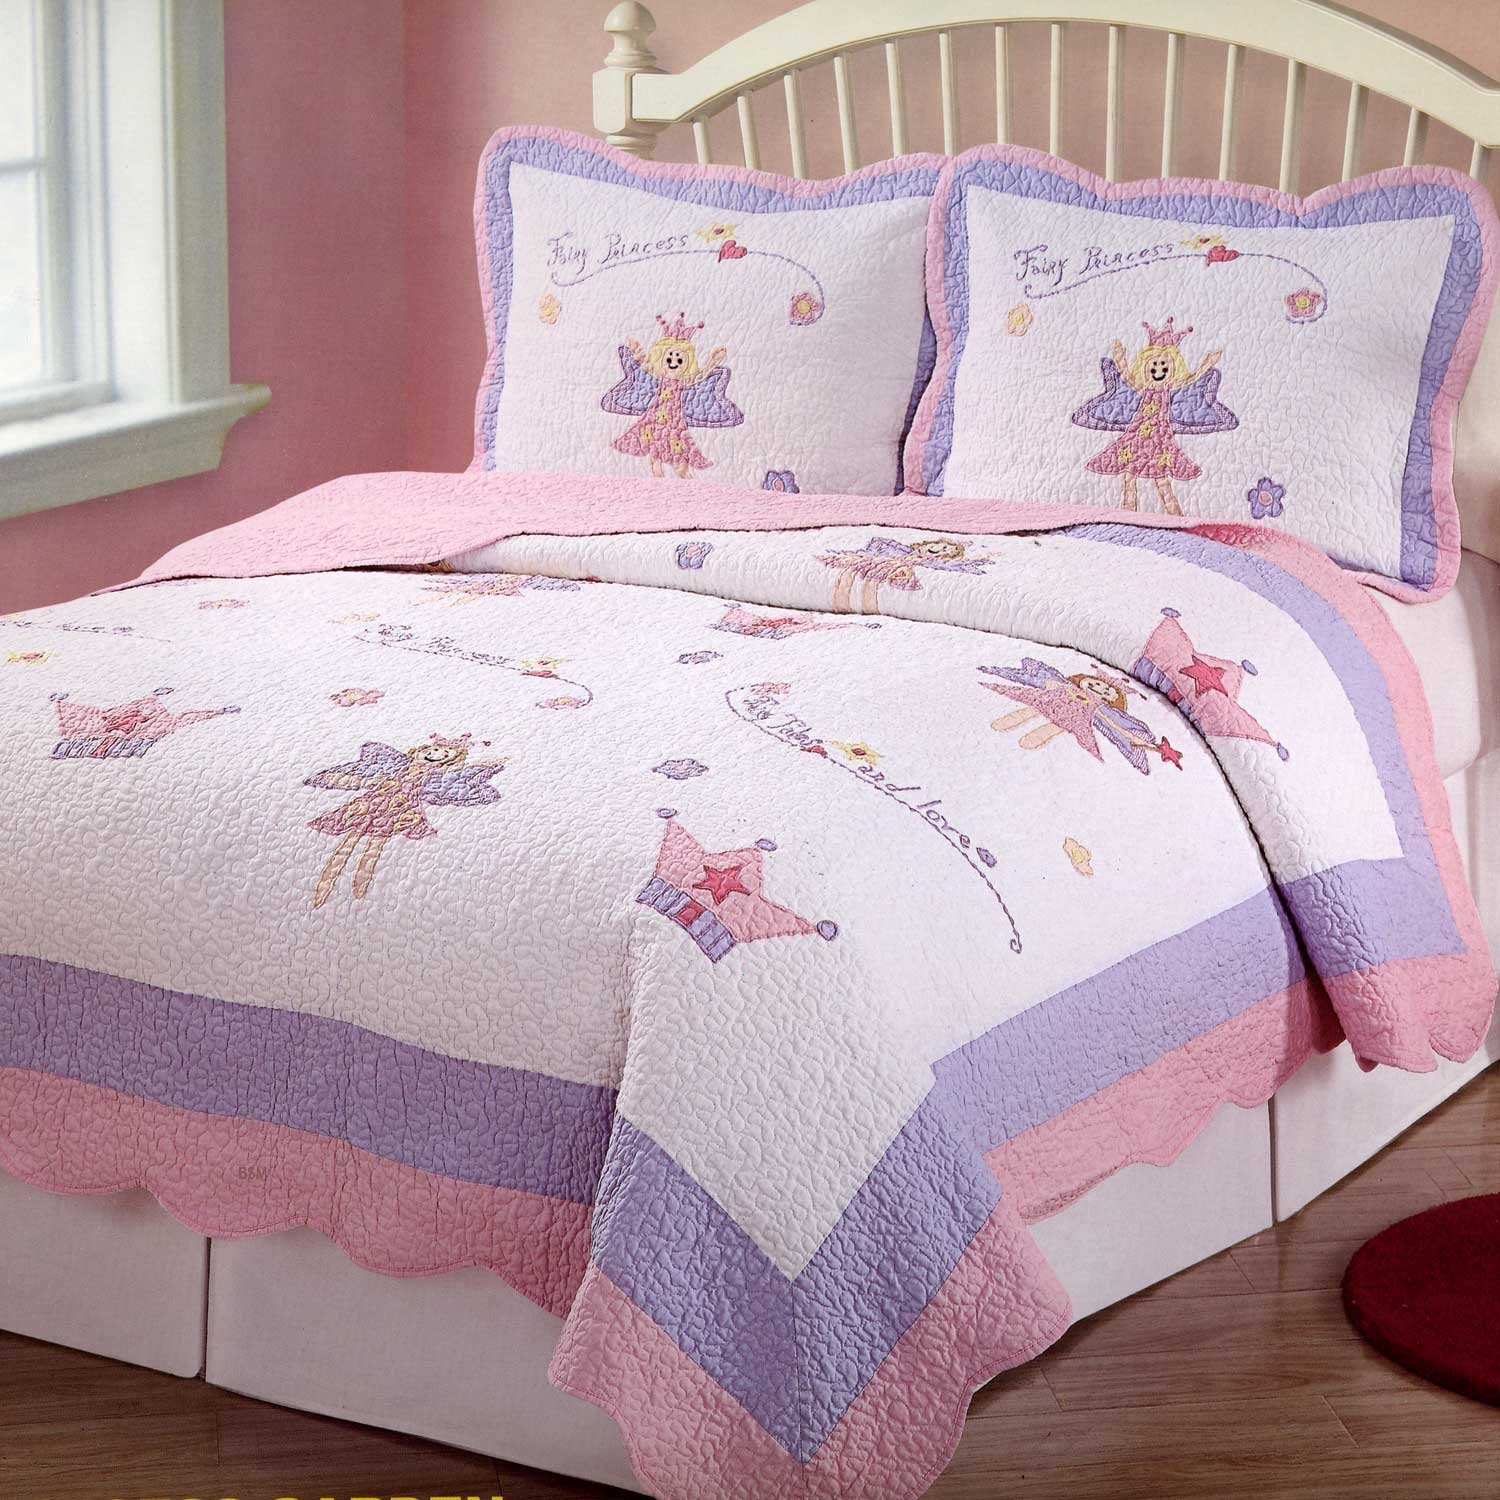 Design Princess Bedding amazon com fairy princess garden twin quilt with pillow sham home kitchen